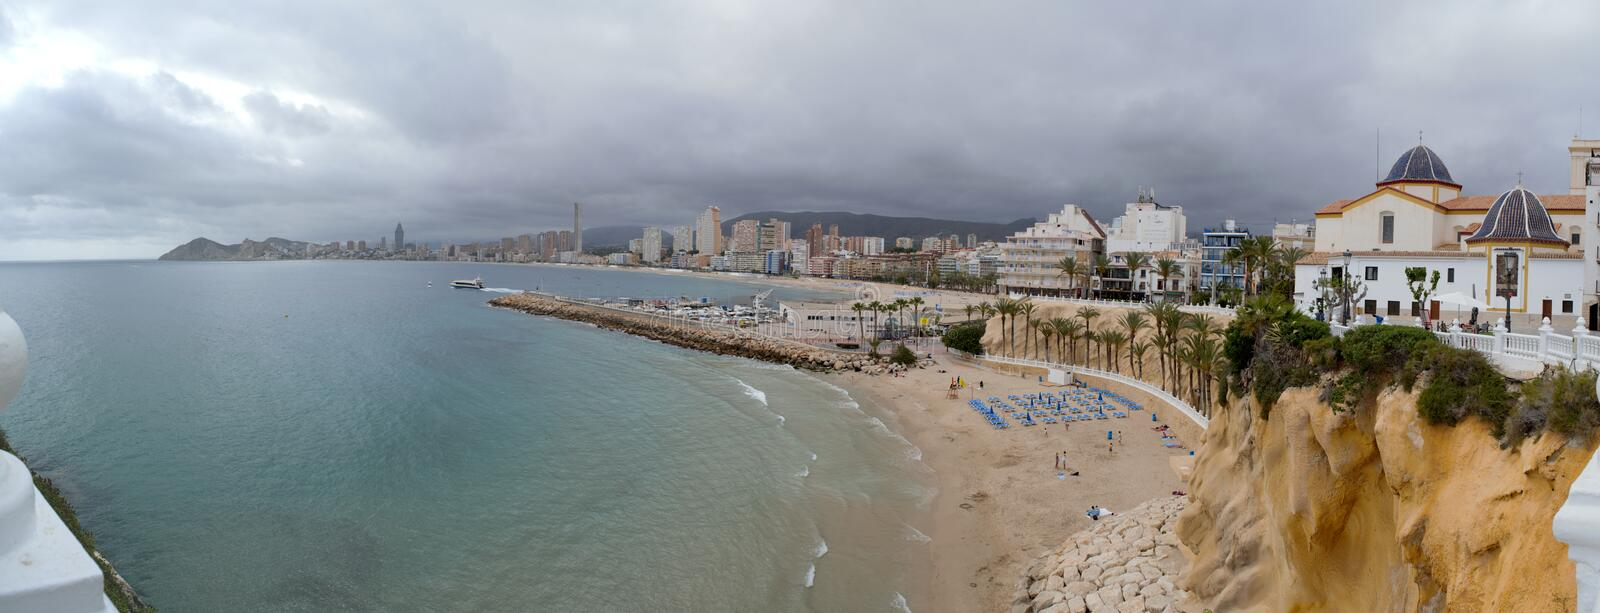 Benidorm,alicante,spain;2019-04-29: Panoramic view of Benidorm beach in Alicante, Spain. Benidorm,alicante,spain;2019-04-29: Panoramic city hall of Benidorm in royalty free stock photography